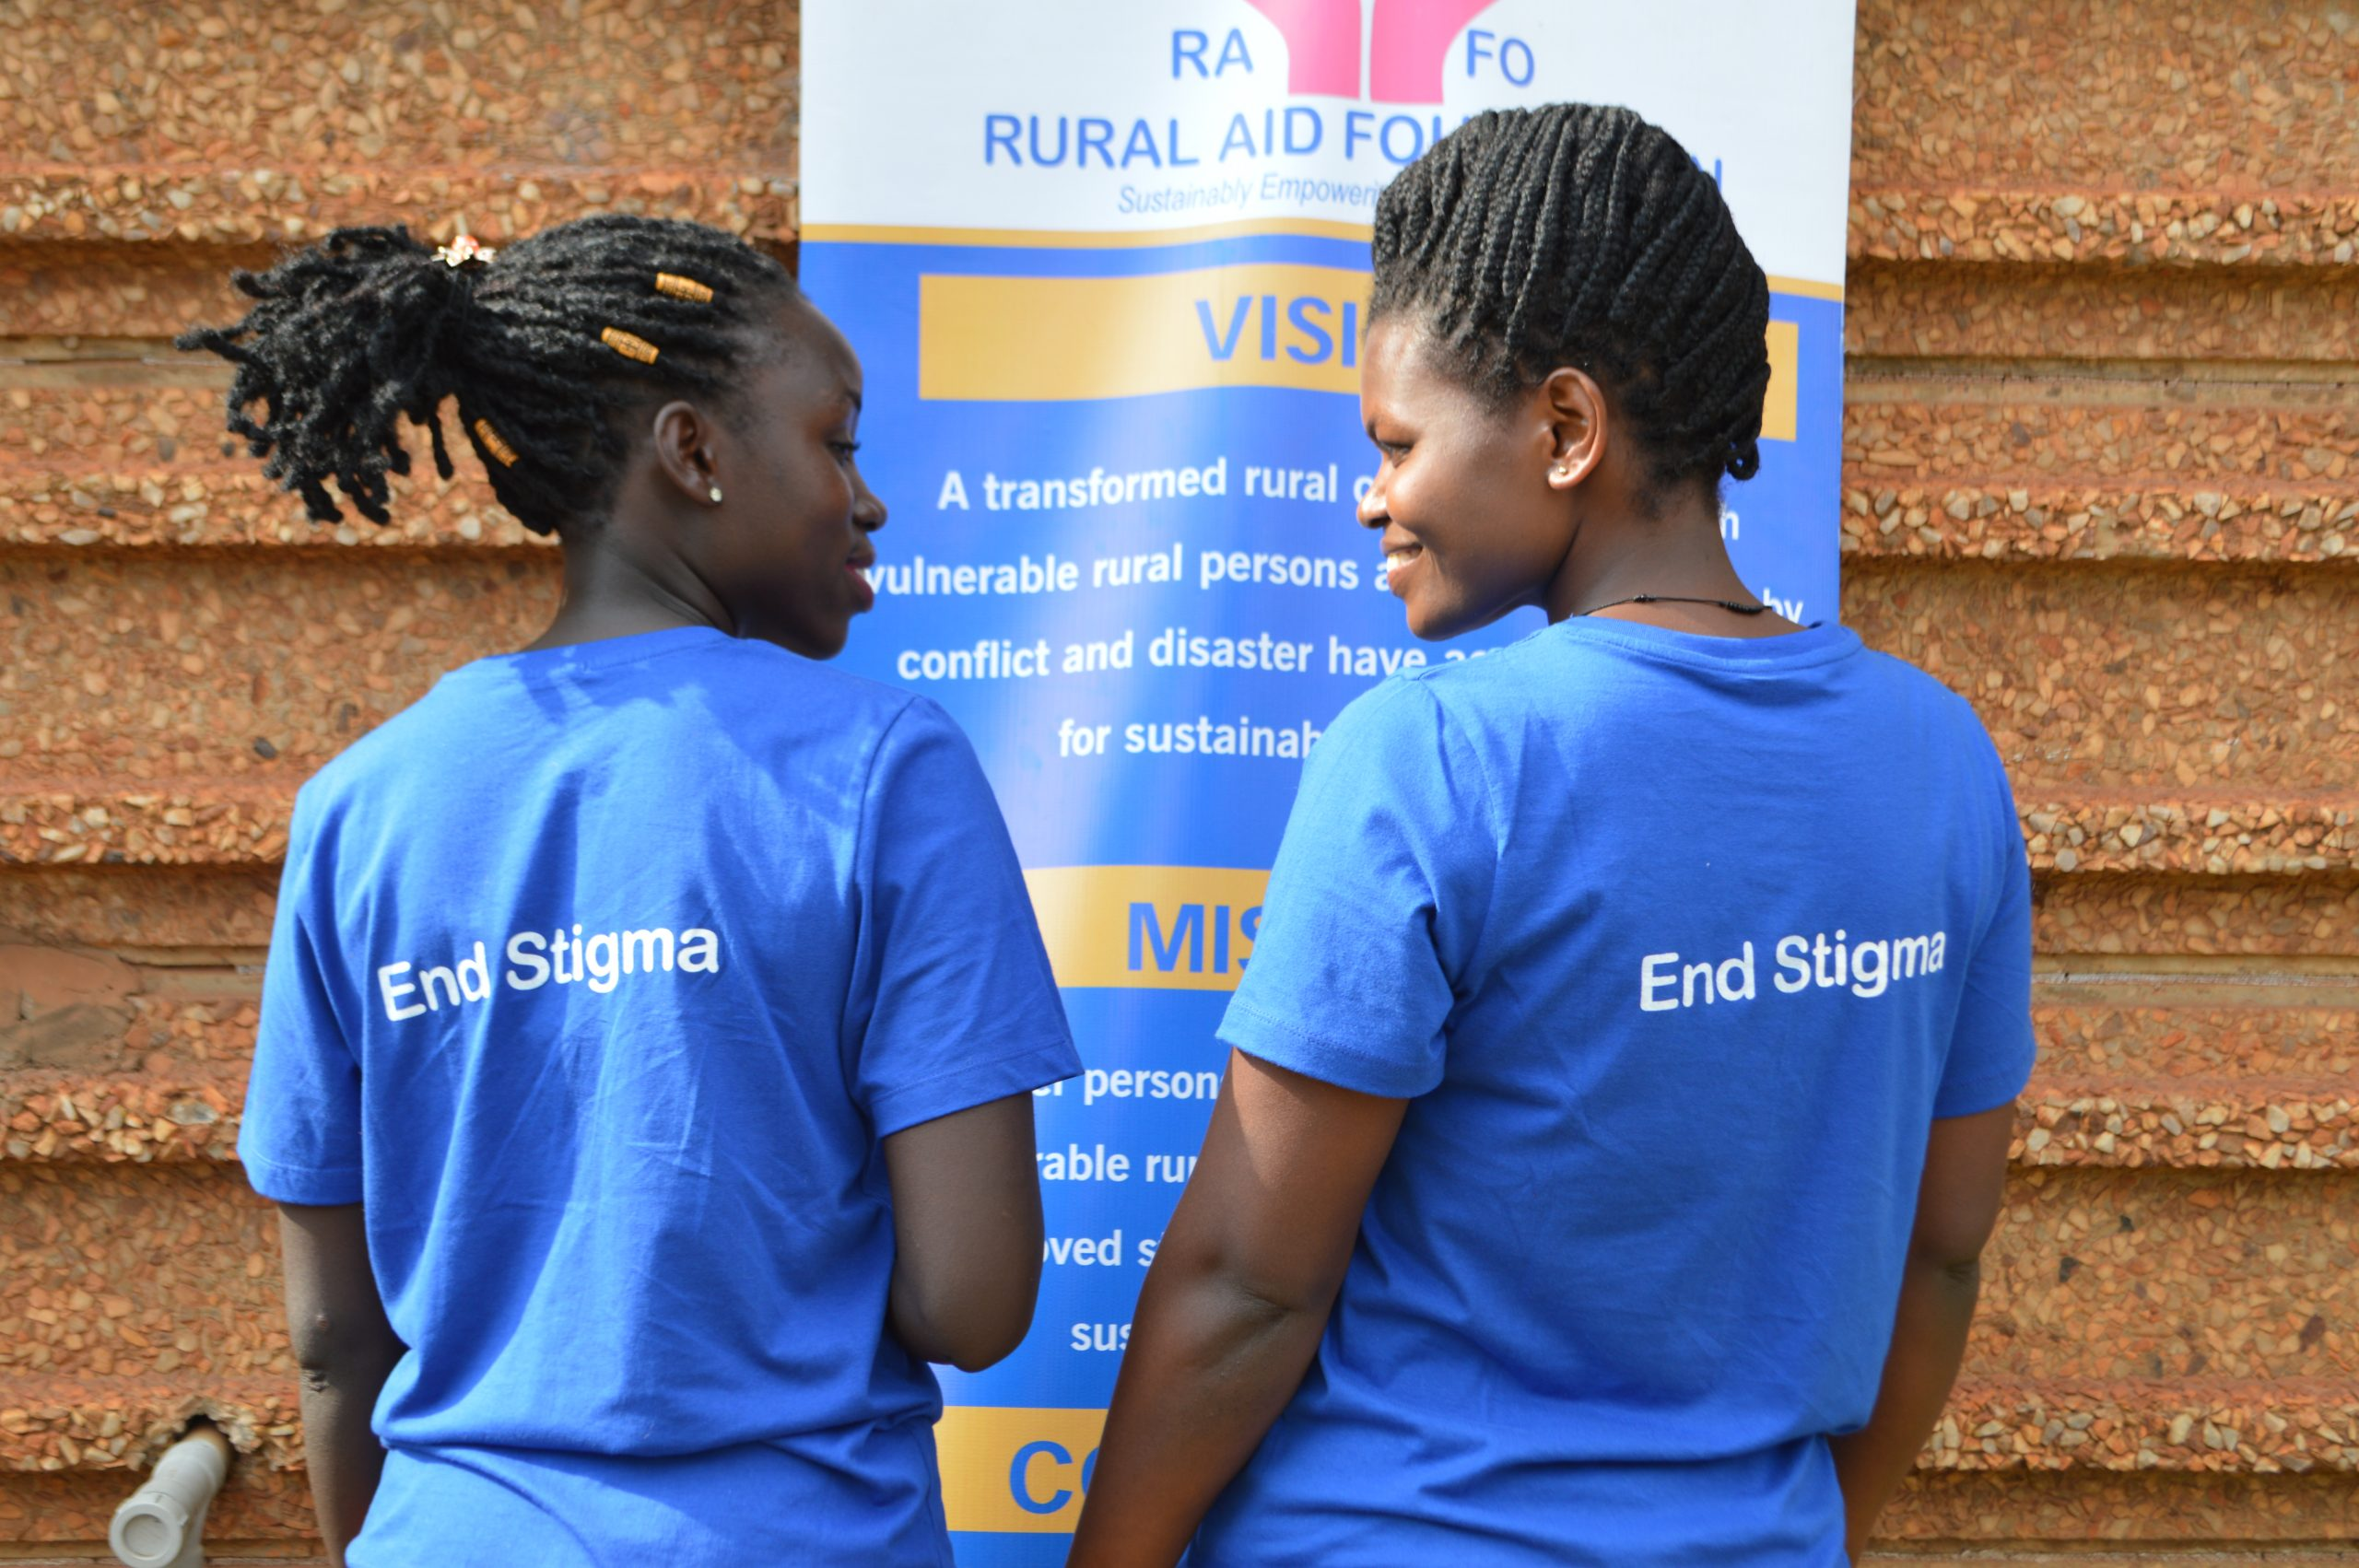 ABORTION STIGMA TO REDUCE MATERNAL MORTALITY AMONG GIRLS AND WOMENN